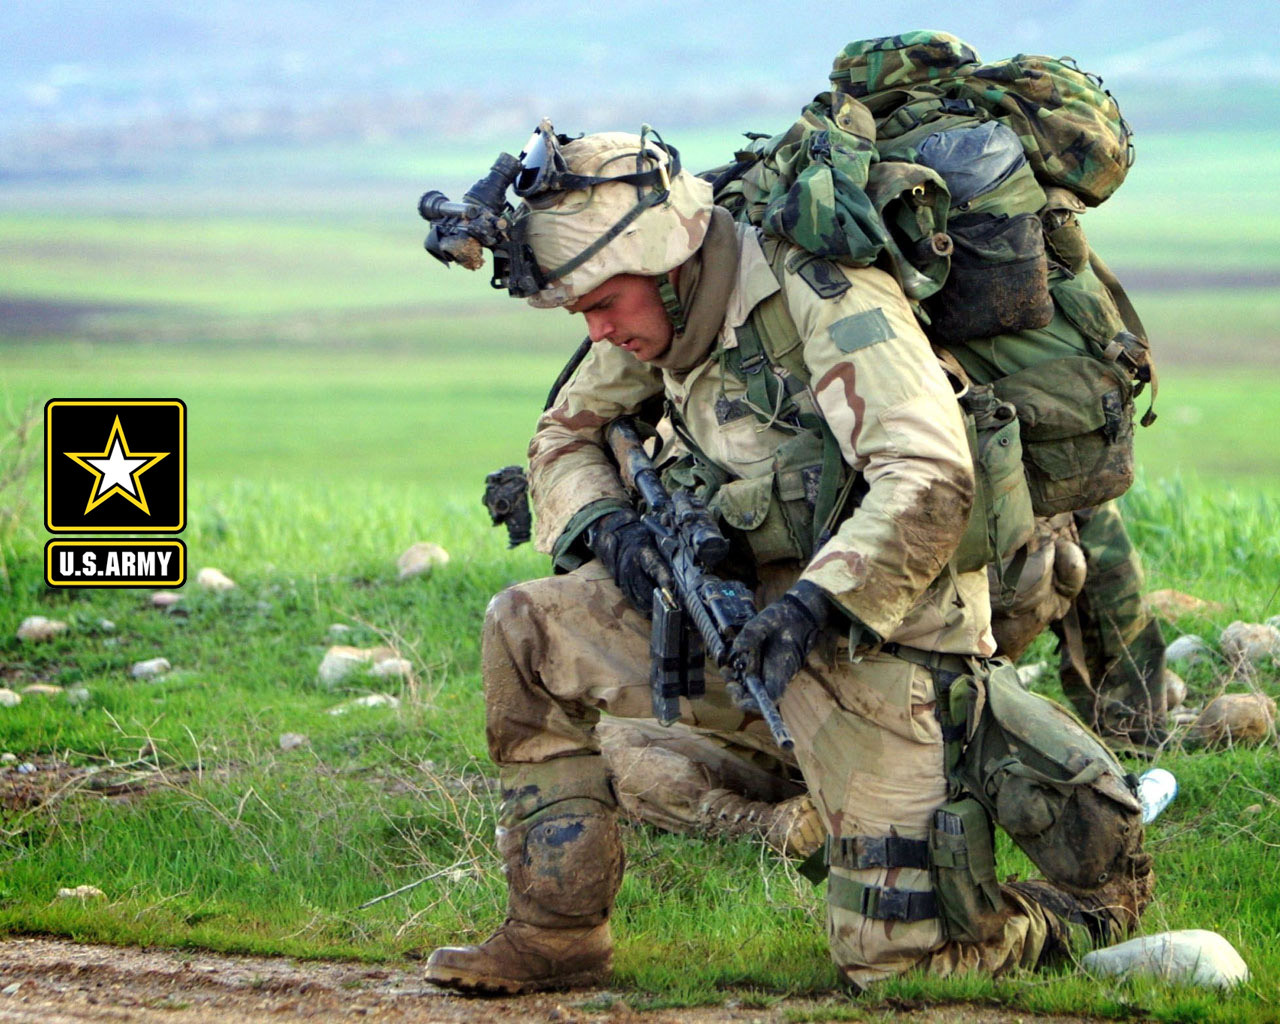 1280x1024 US Army Soldier Desktop PC And Mac Wallpaper